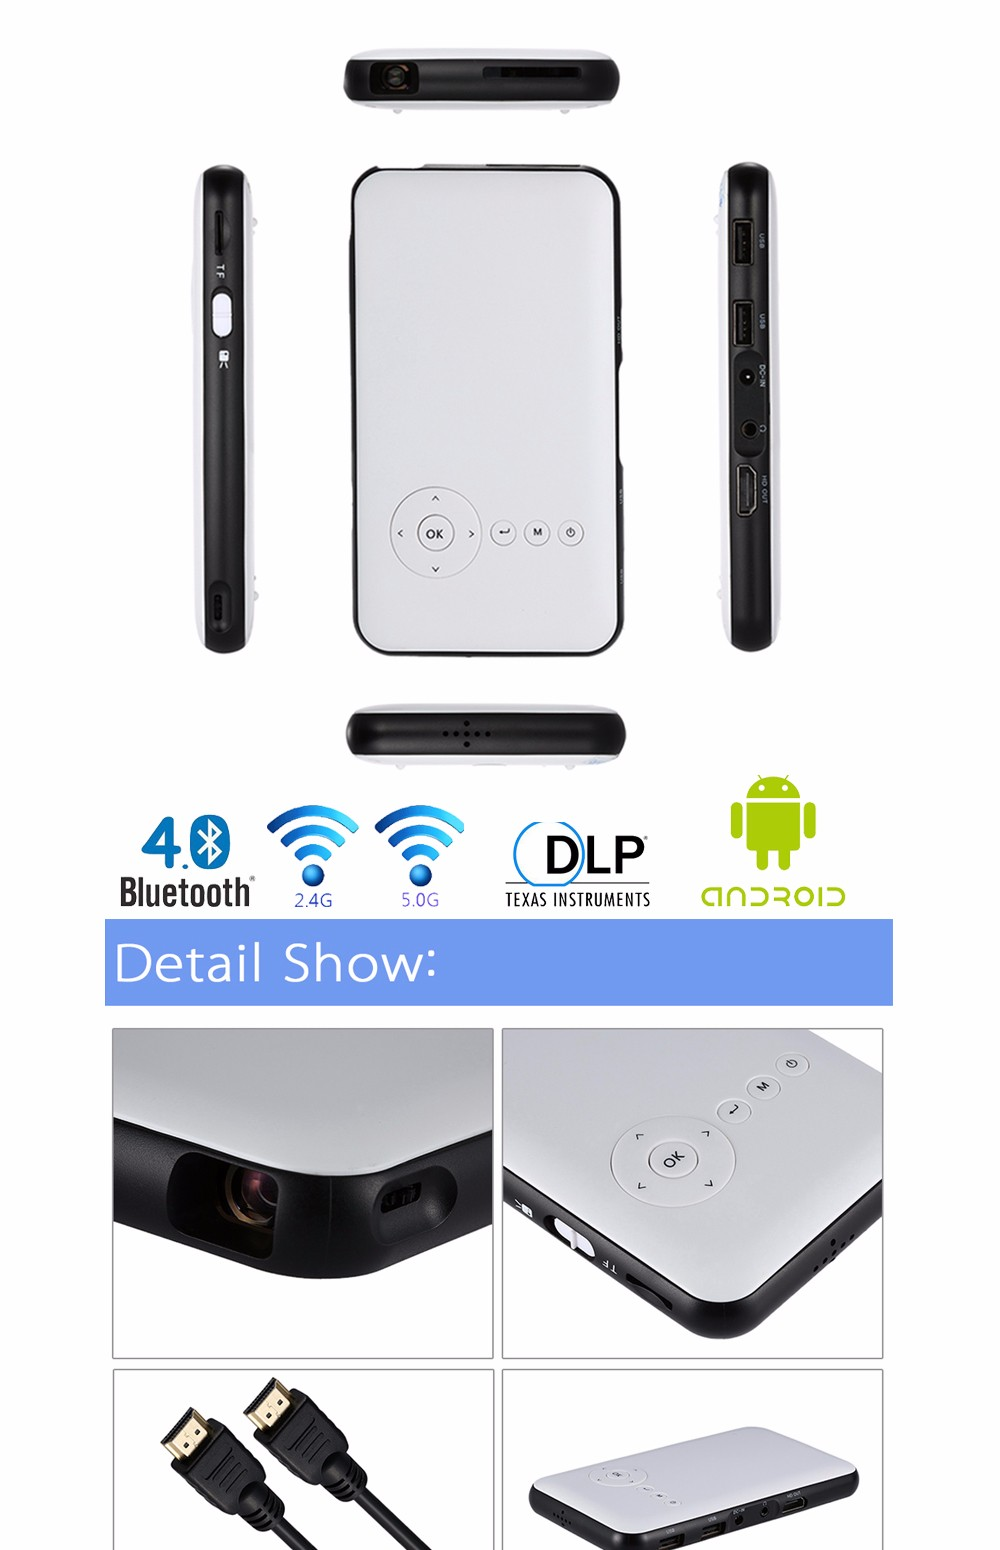 Portable Mini DLP Projector Wifi Smart LED Projectors Wireless HDMI Output Android Smartphone Projector with 1G/8GB